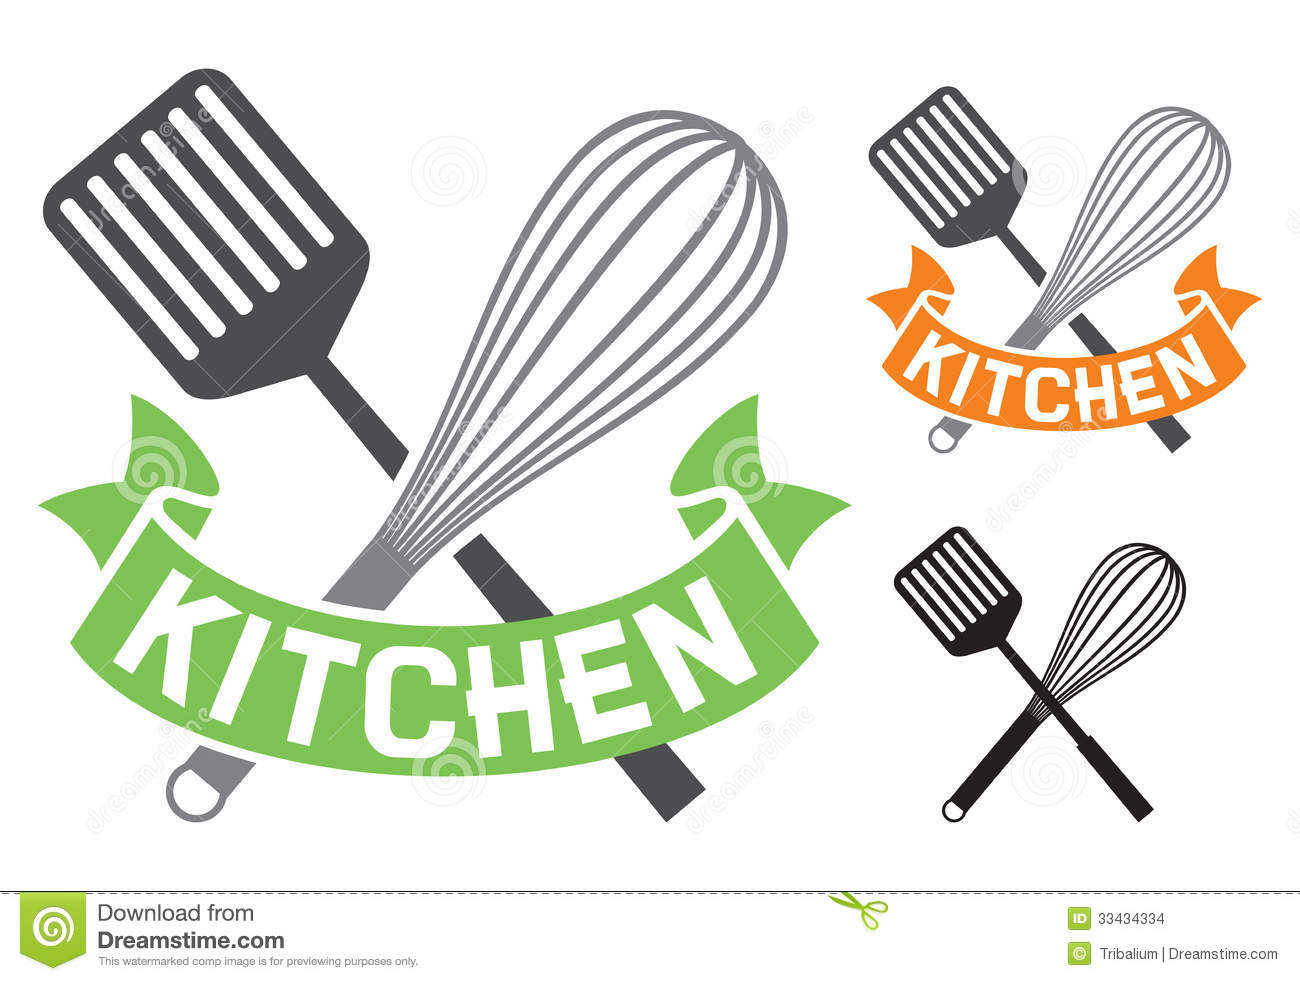 Kitchen Symbol Stock Images - Image: 33434334